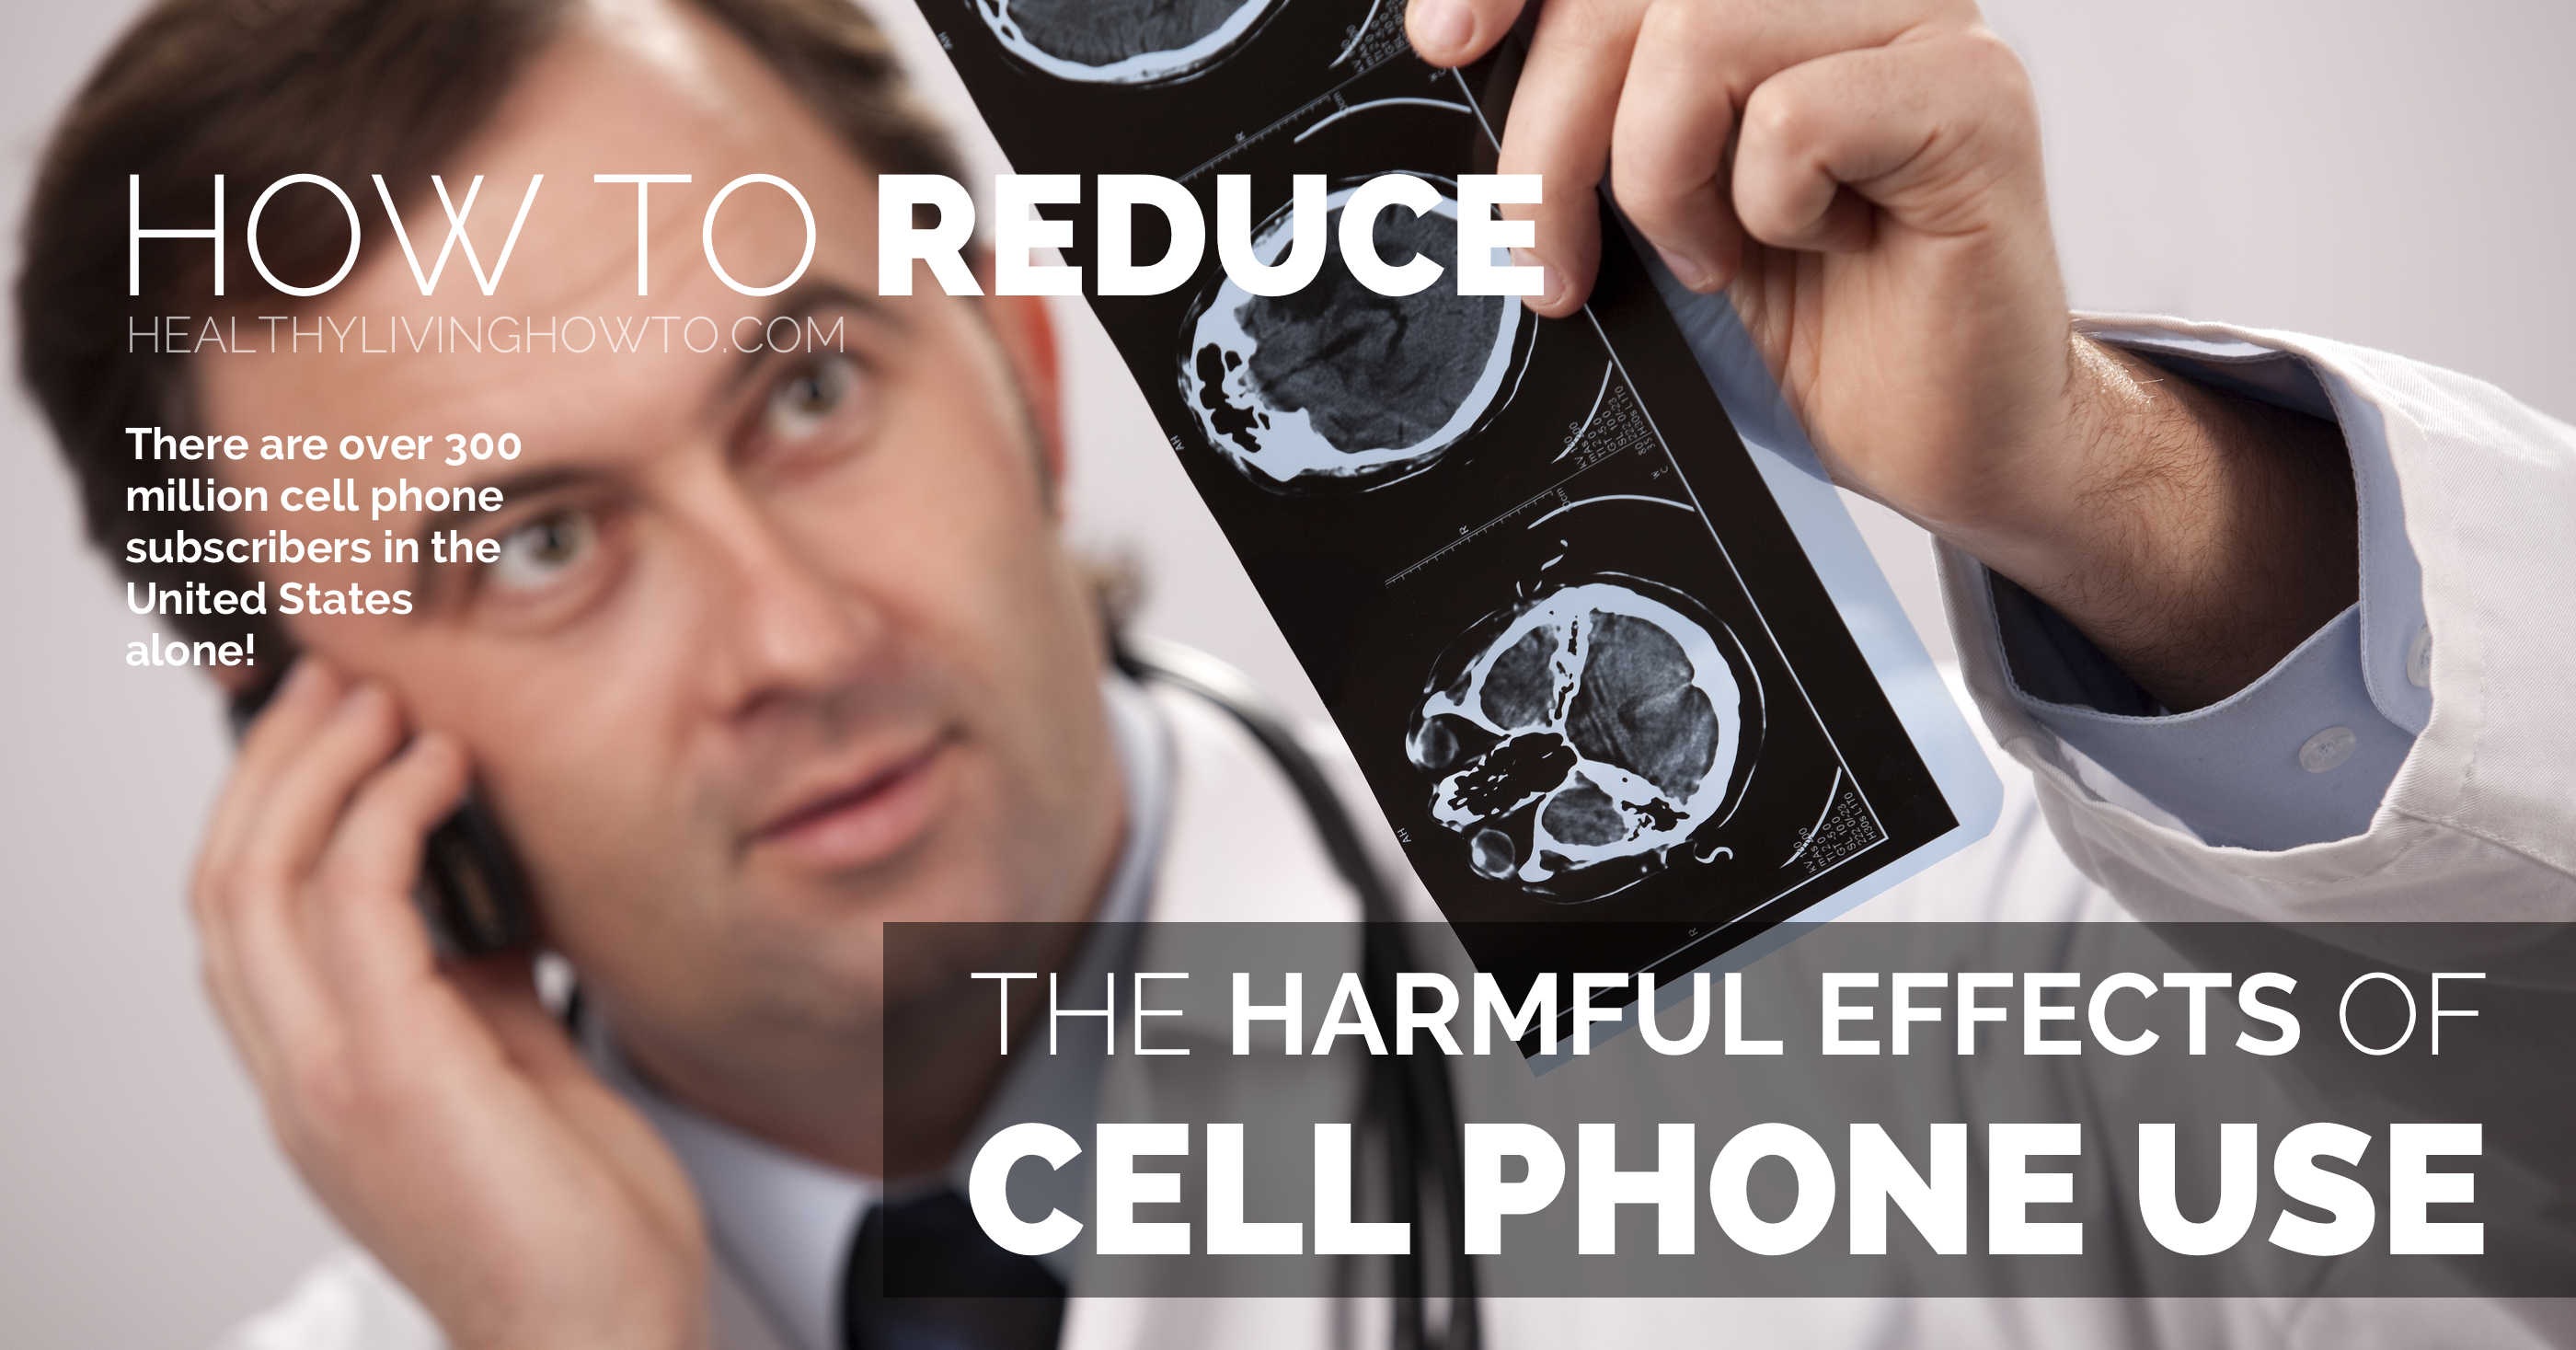 Another study struggles to show any substantial link between cancer and cell phones